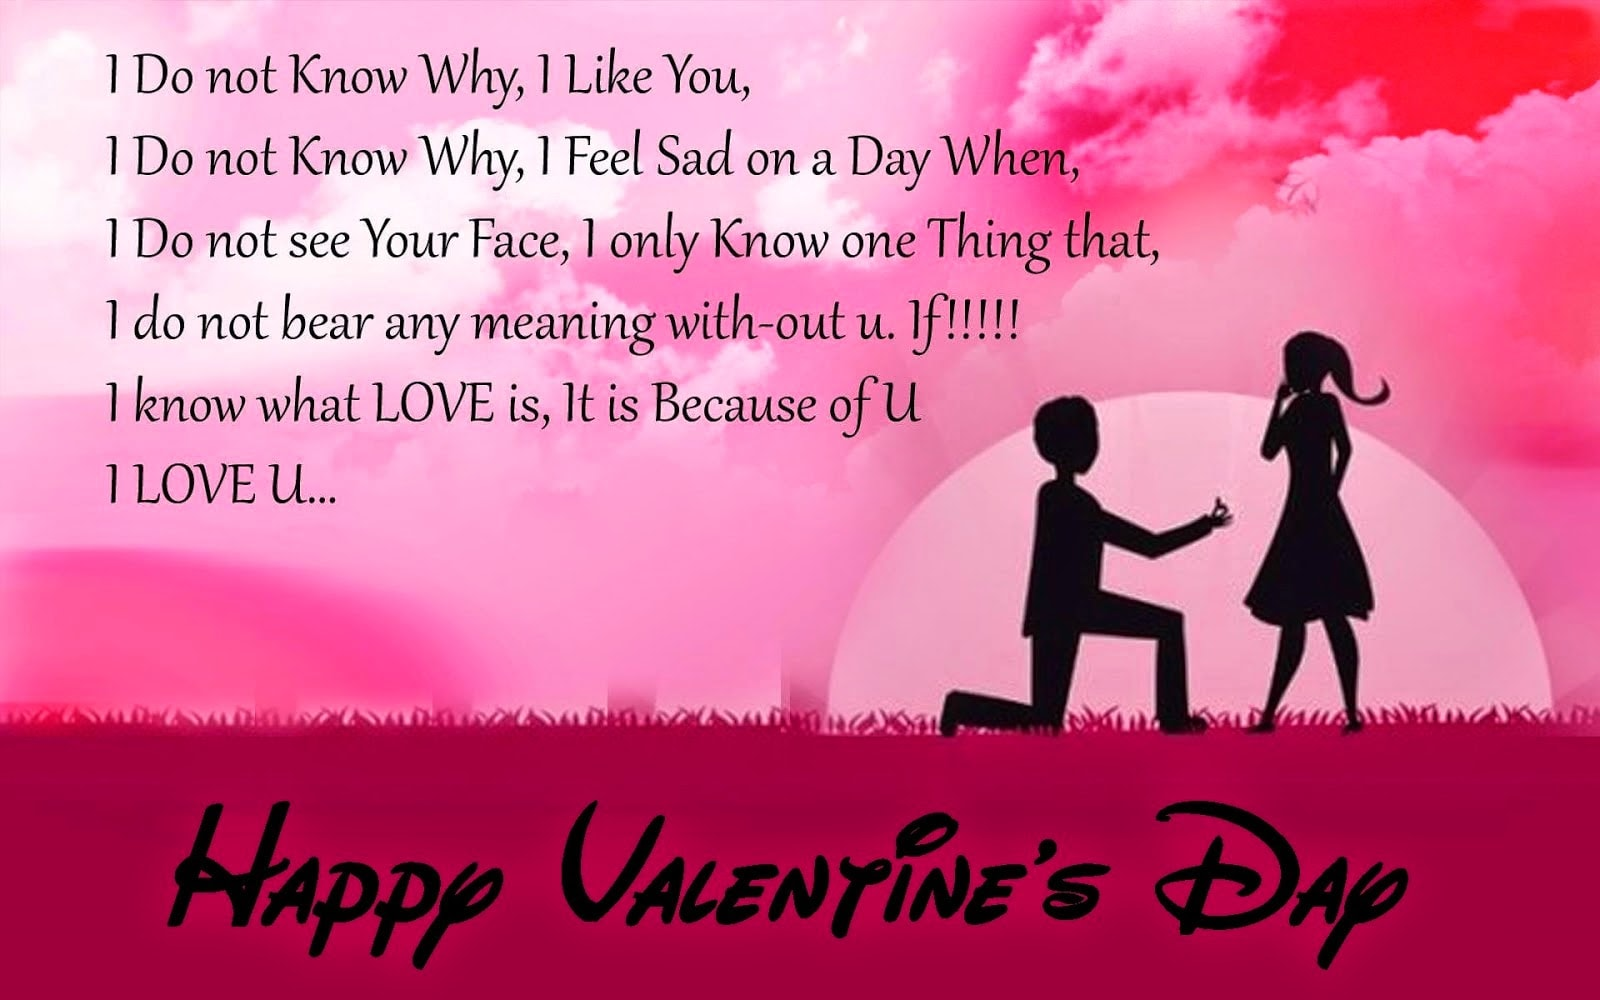 Valentine's Day Wishes for Wife in Tamil in 2018